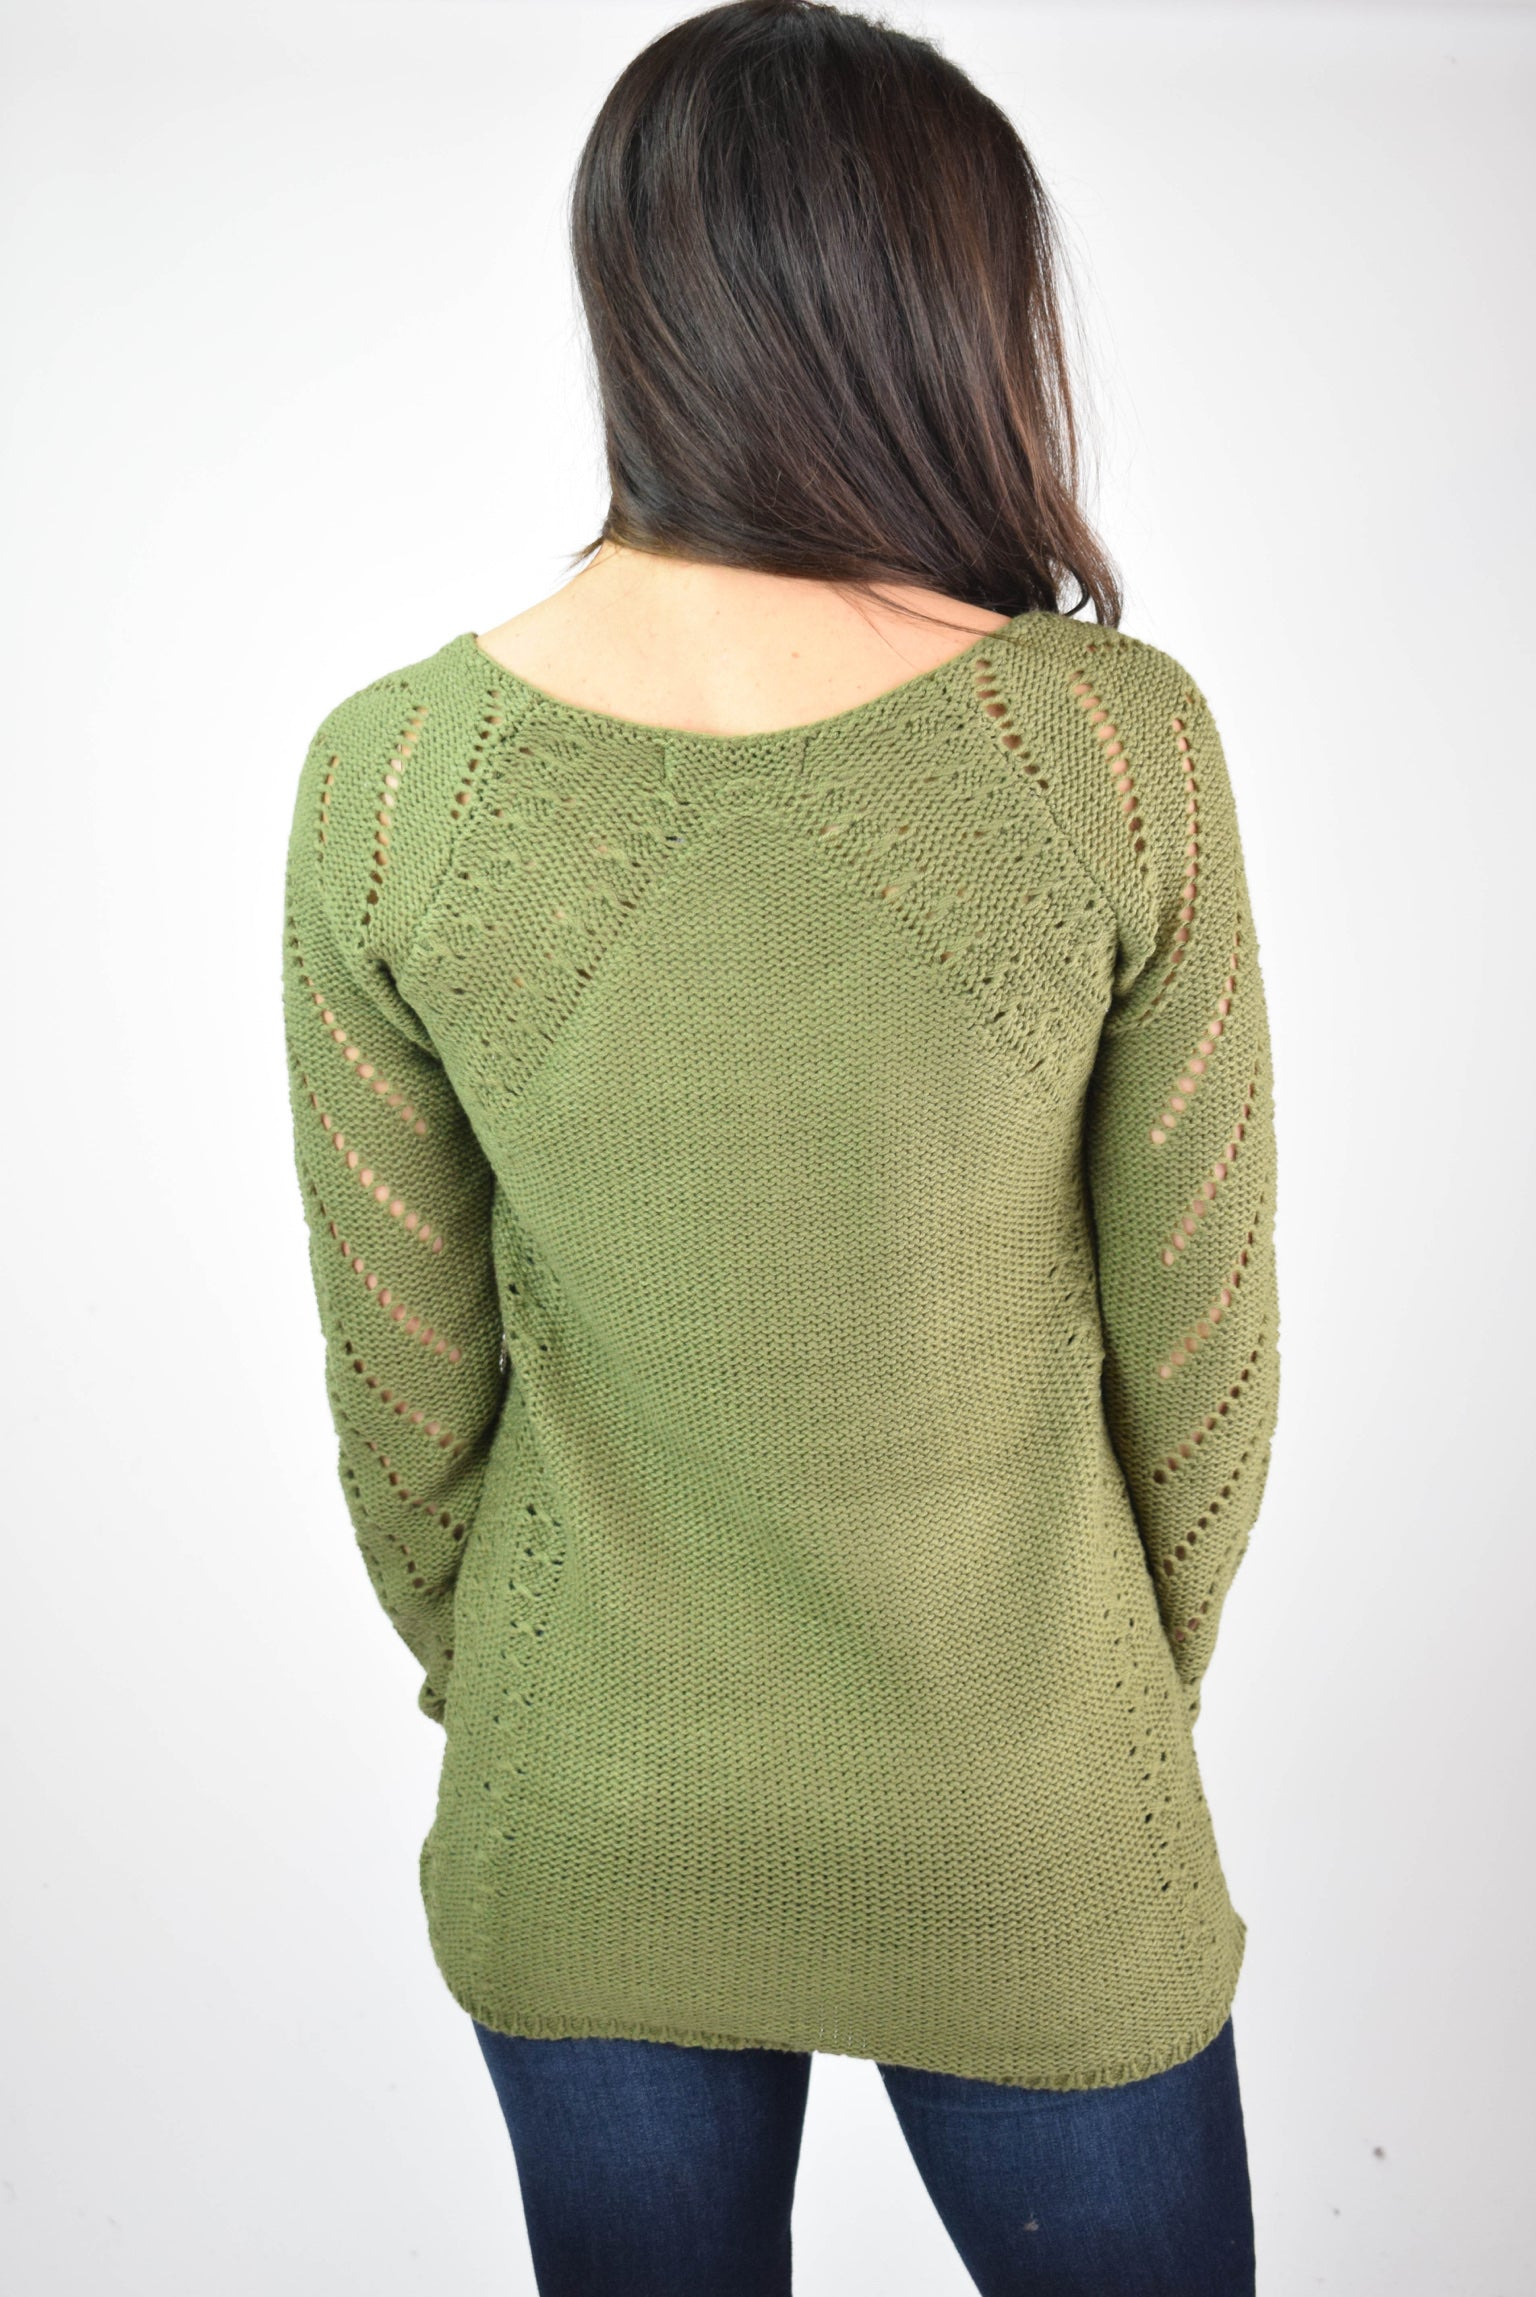 As the Leaves Change Cutout Detail Sweater - Olive